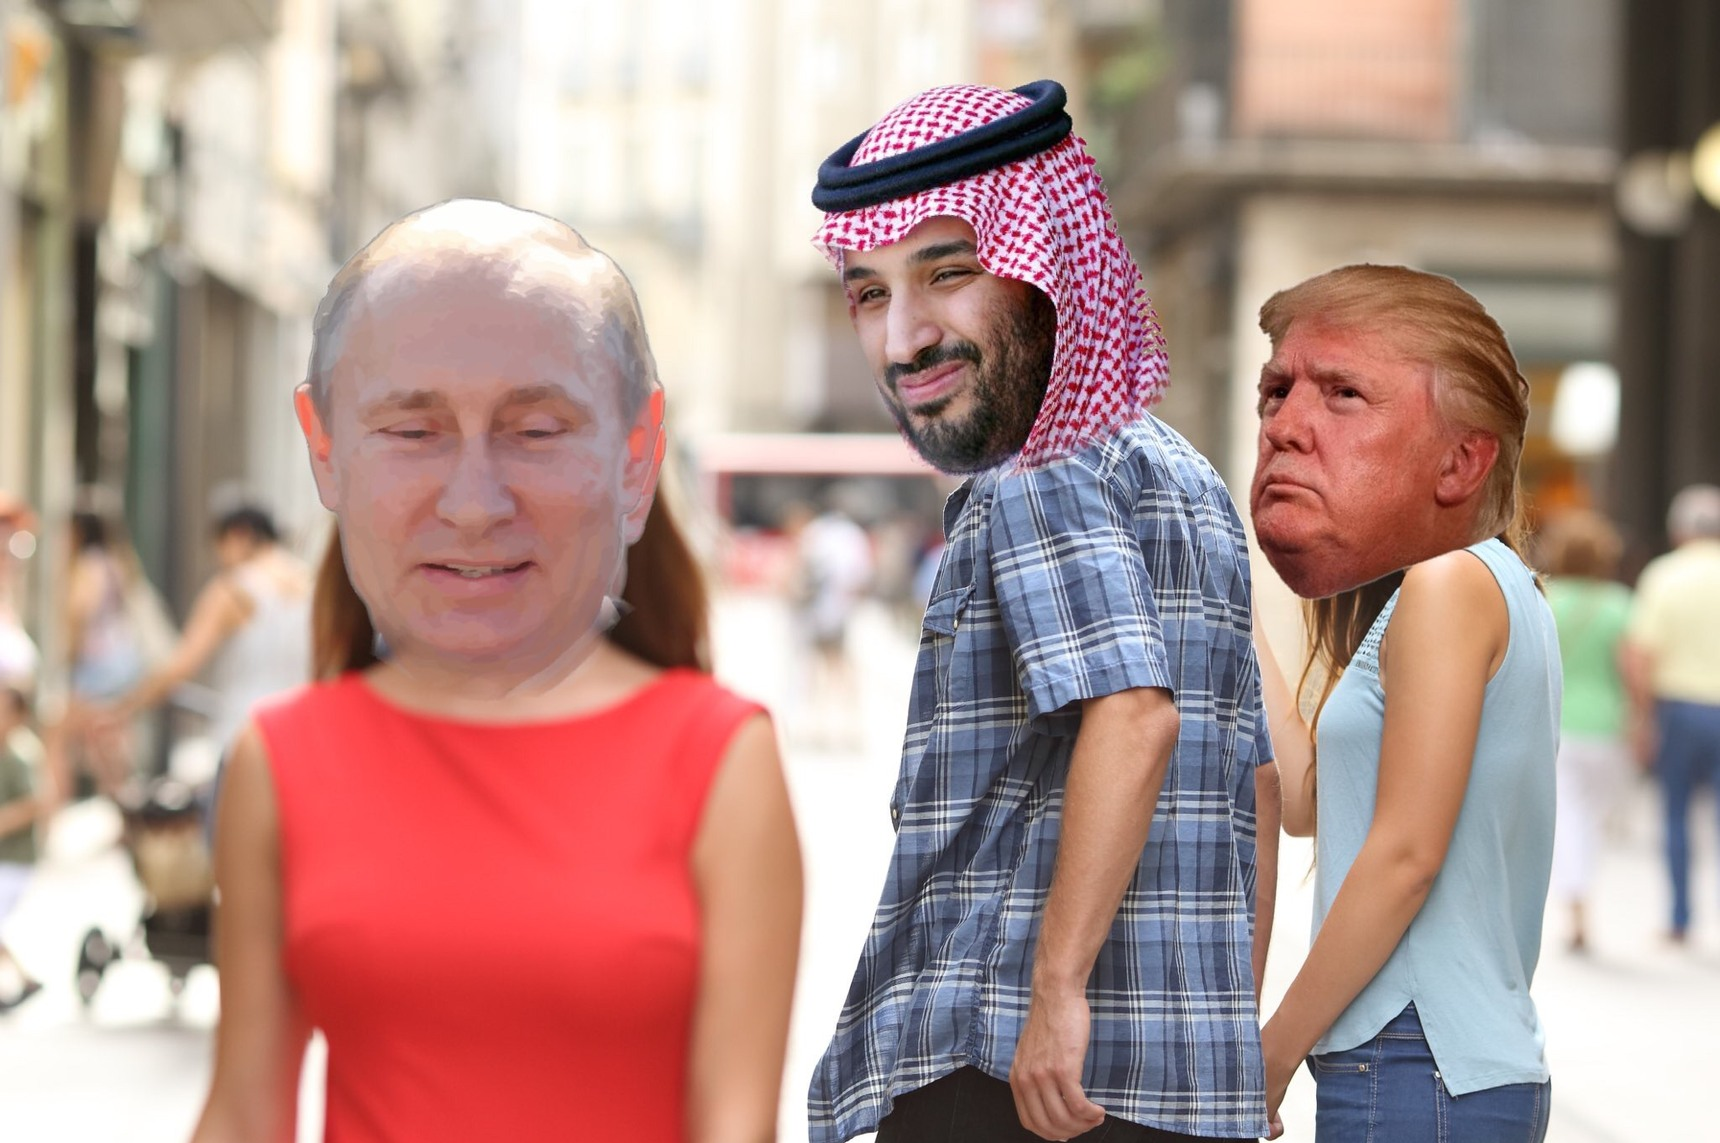 putin, MBS, and dj trump - meme